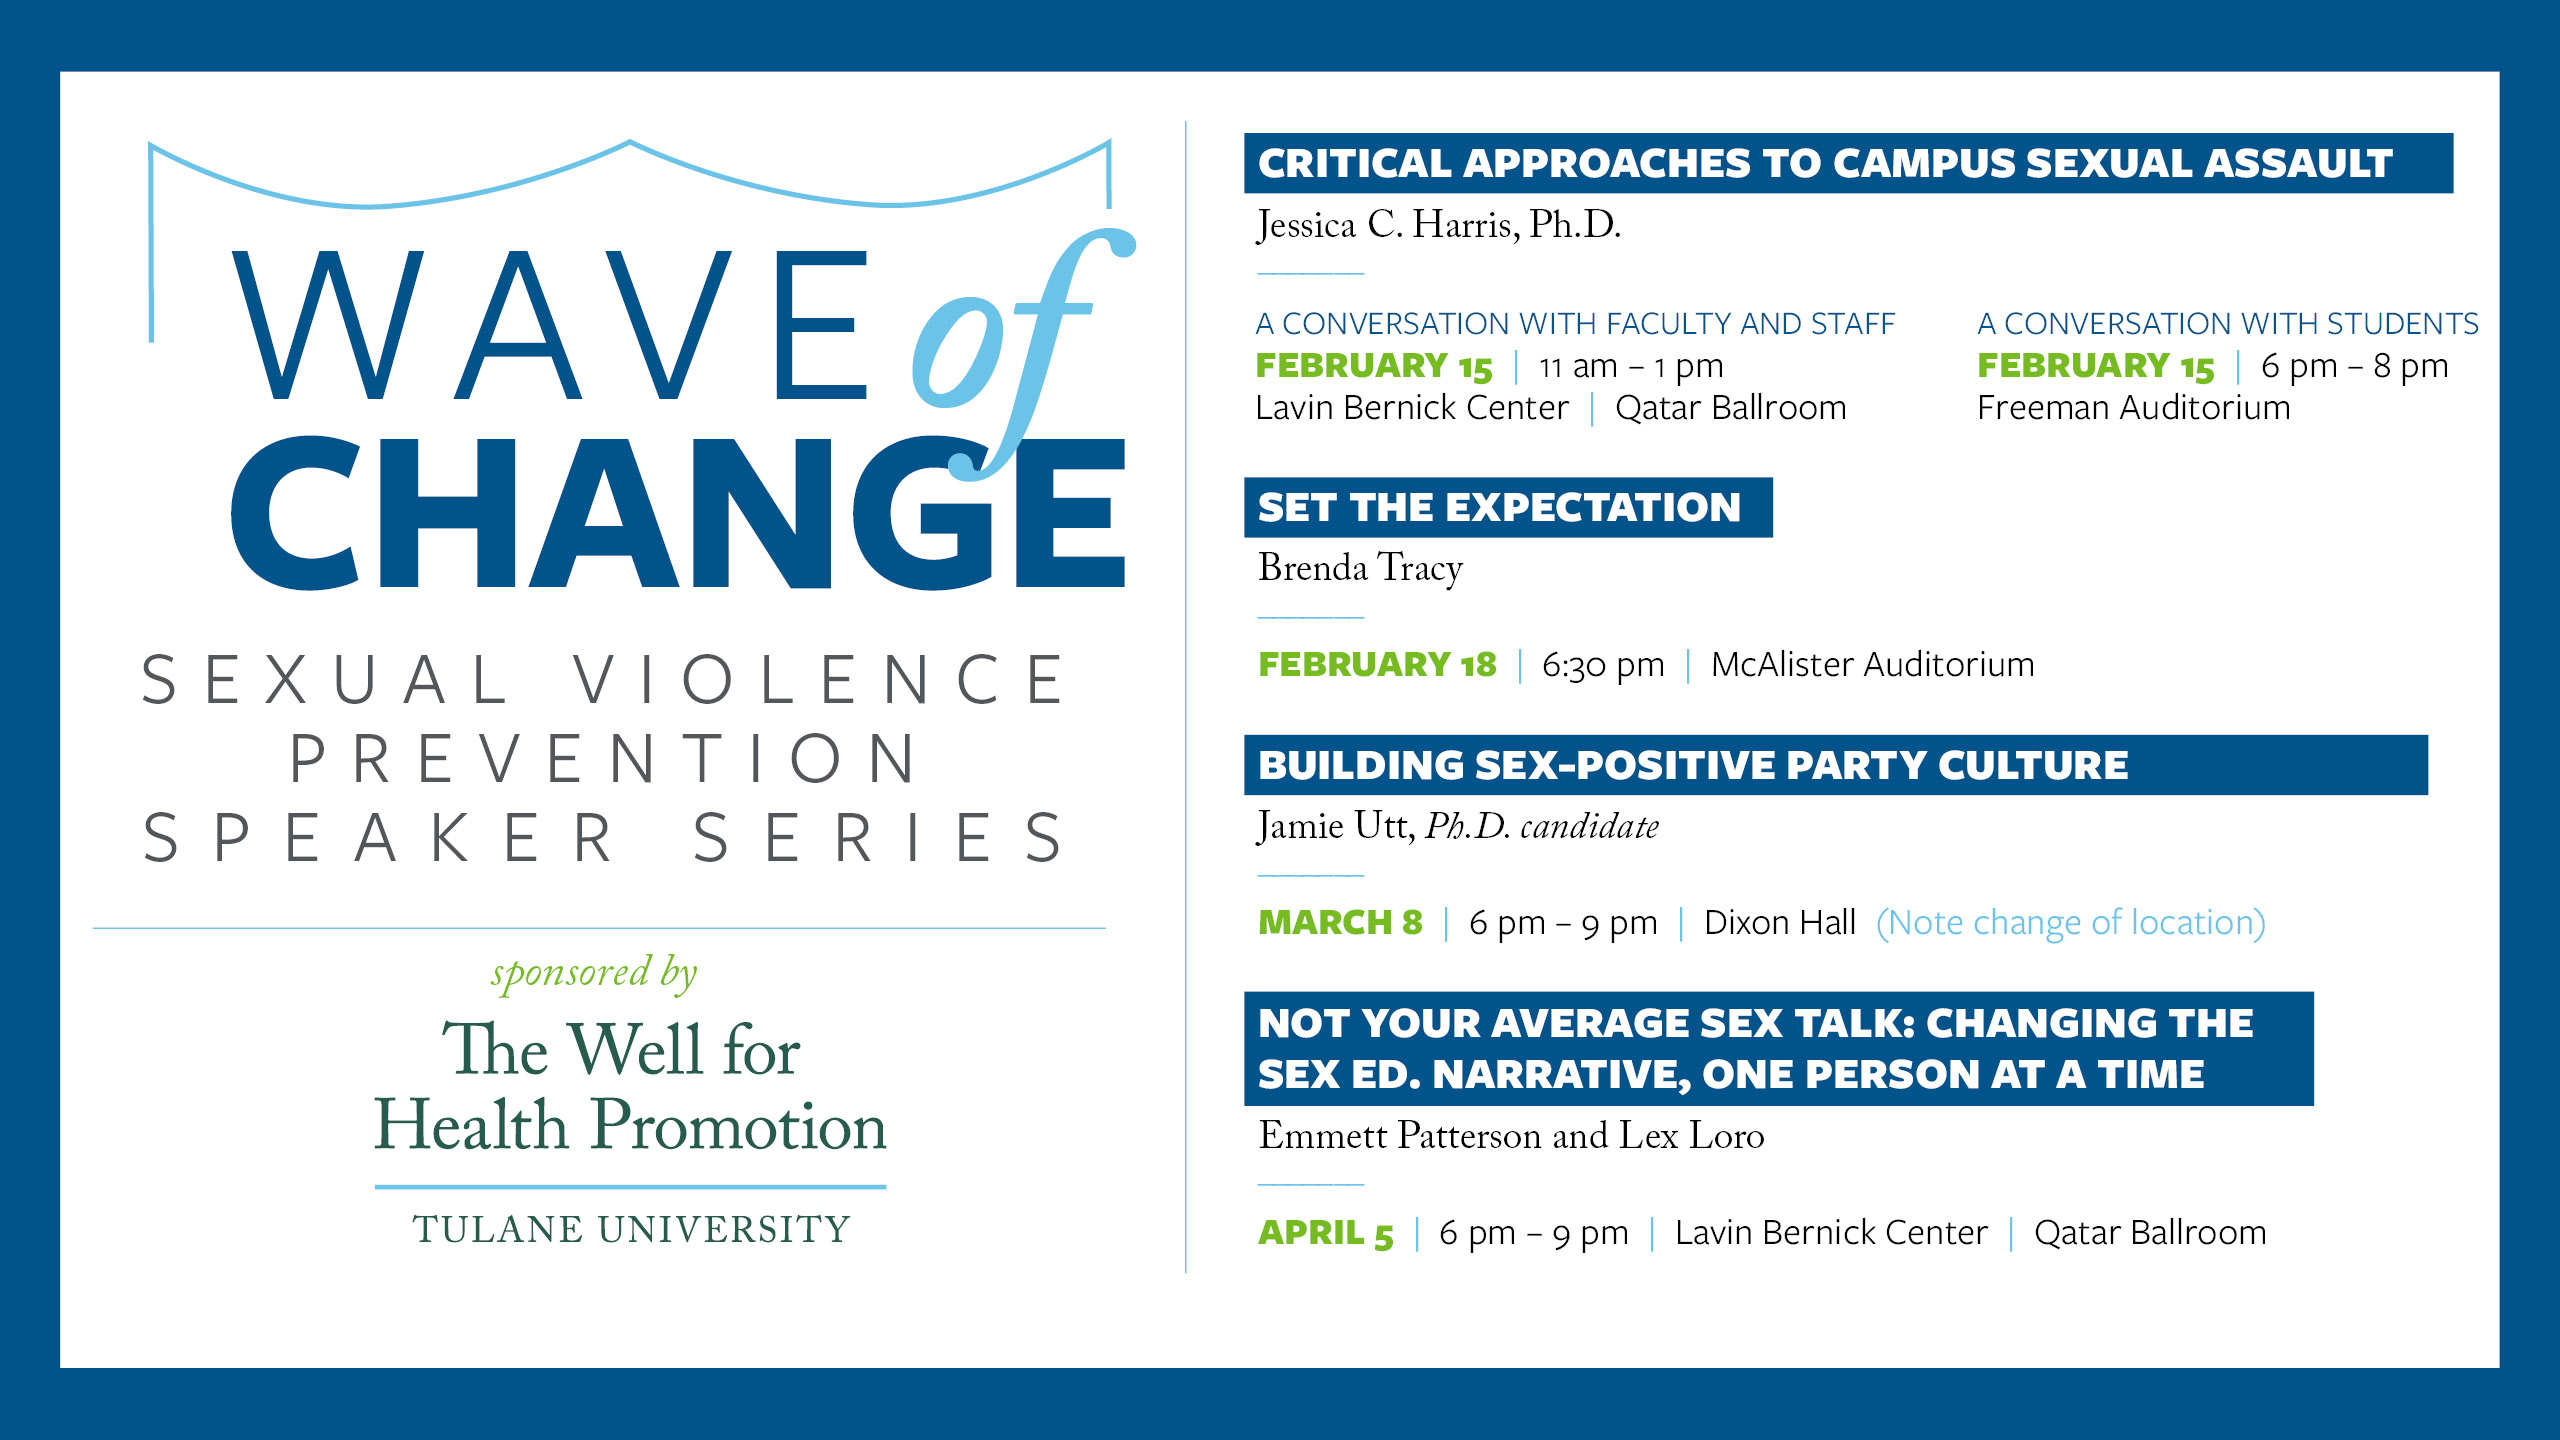 Wave of Change Sexual Violence Prevention Speaker Series 2018